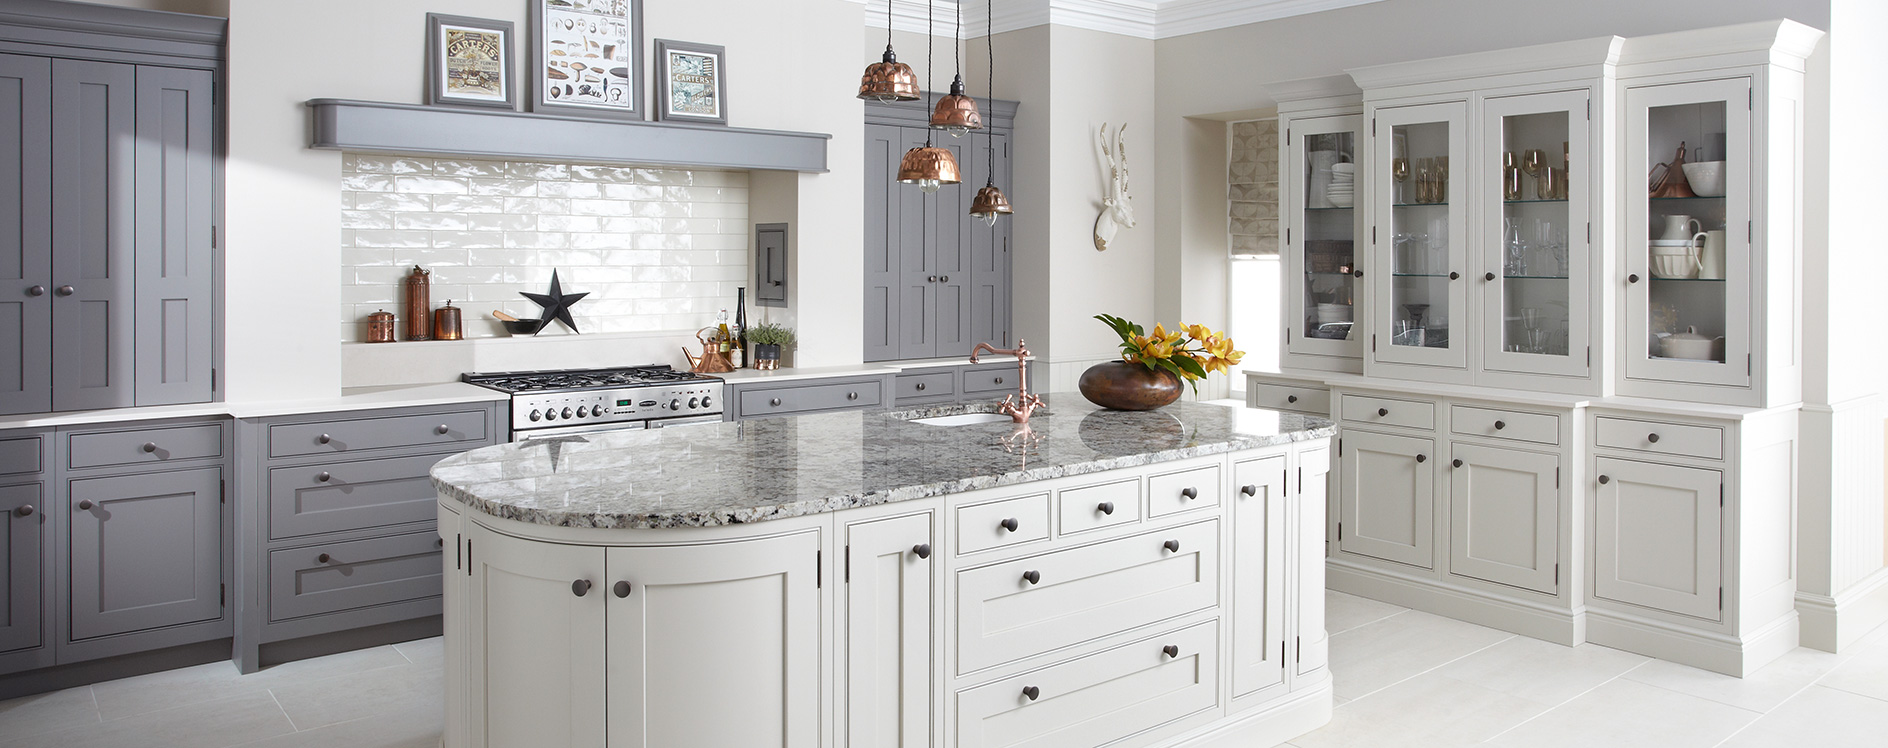 Kitchens wickes enchanting home design for Kitchen remodel styles